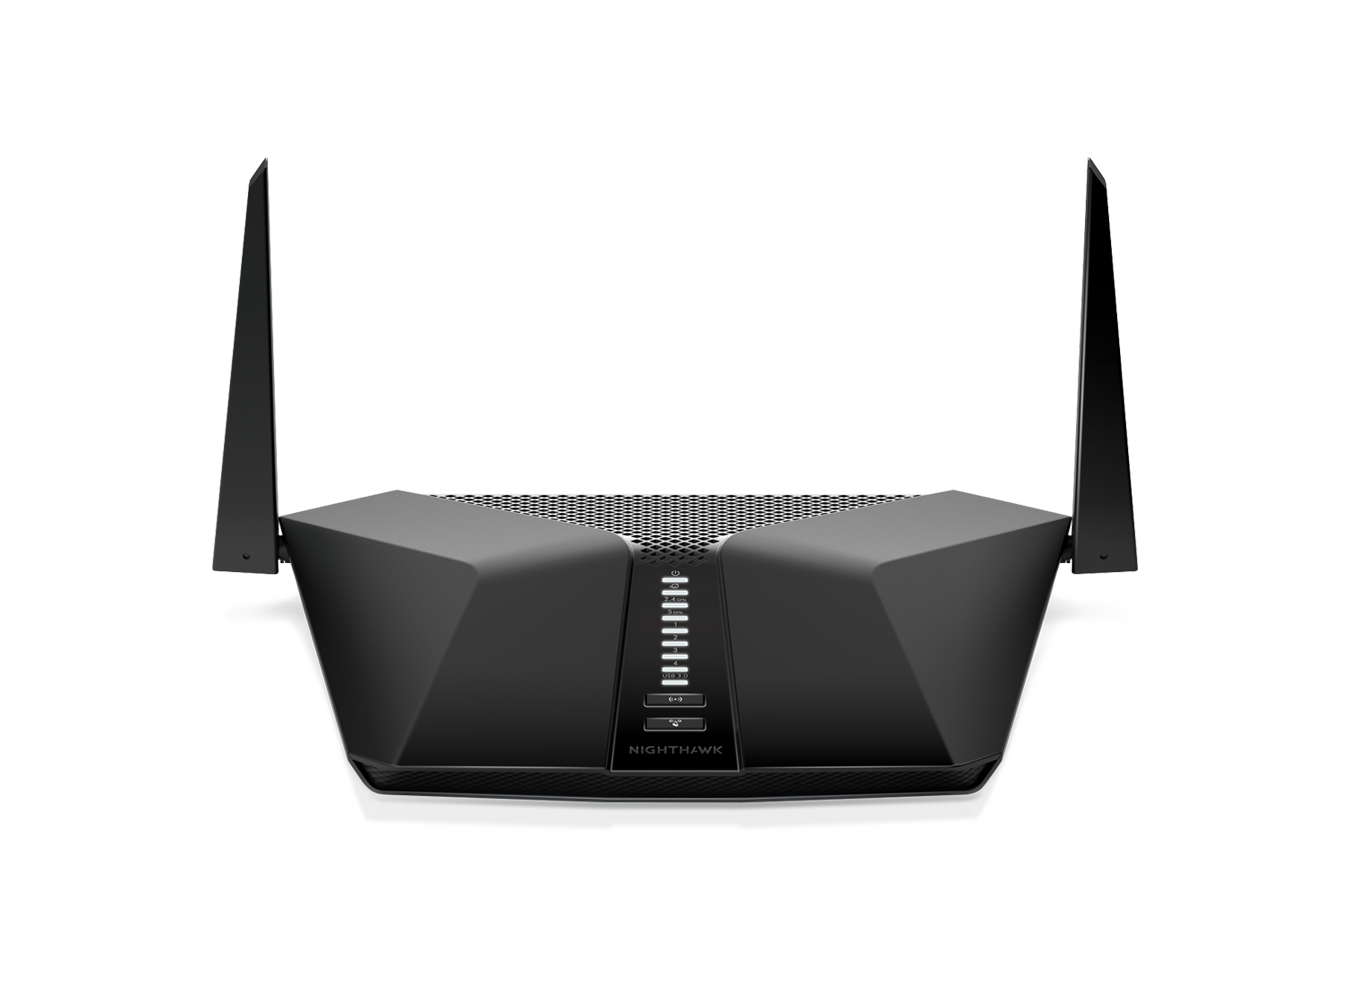 4-Stream-WiFi 6-Router Nighthawk AX4